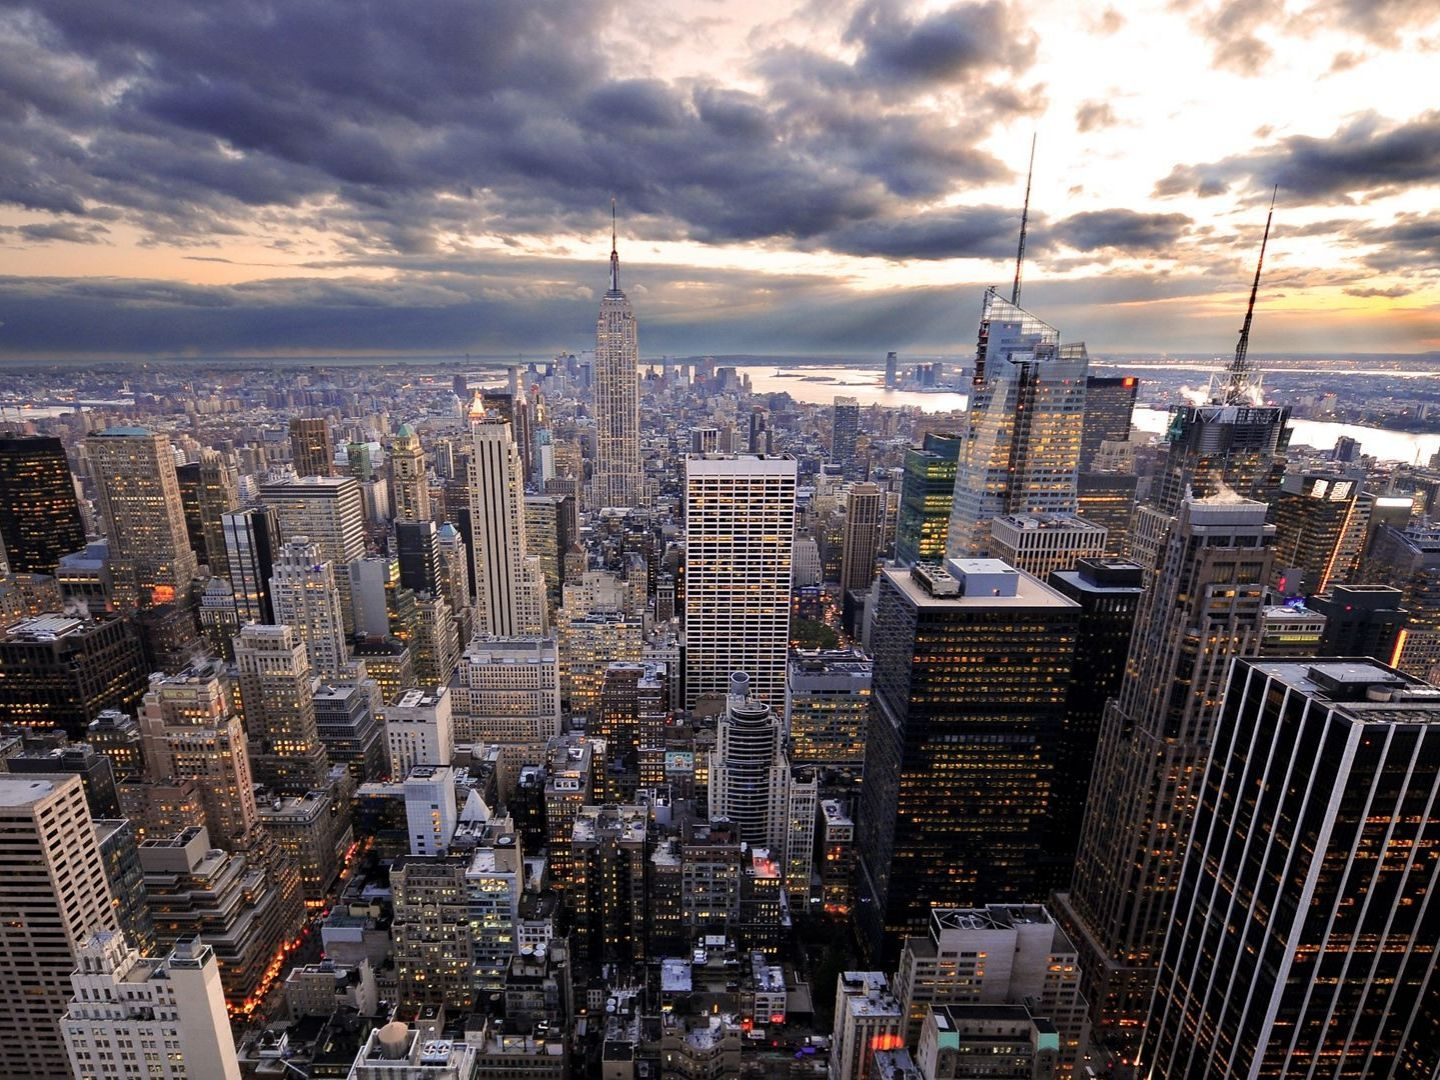 1440x1080 Buildings & City: New York City, picture nr. 32278